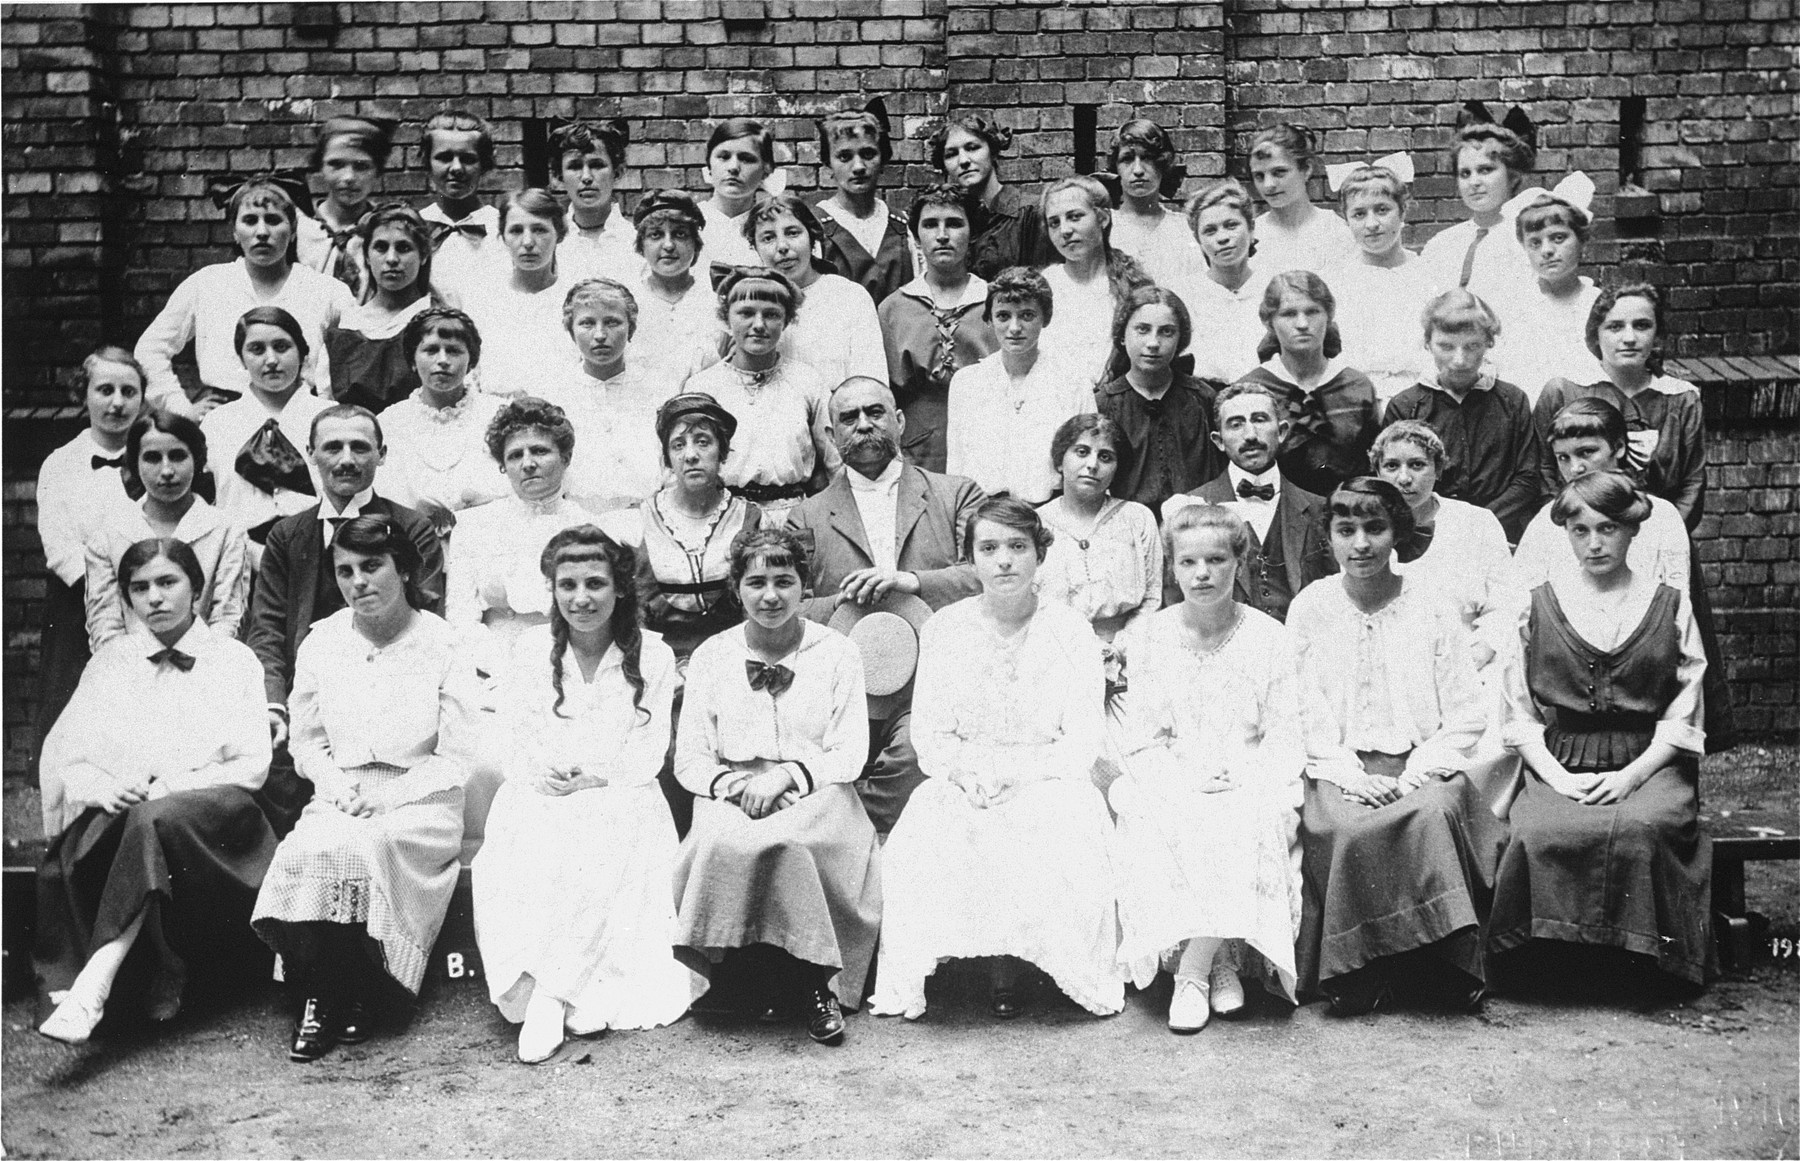 Group portrait of the faculty and students at a secretarial school in Budapest.  Among those pictured is Margit Kornhauser.